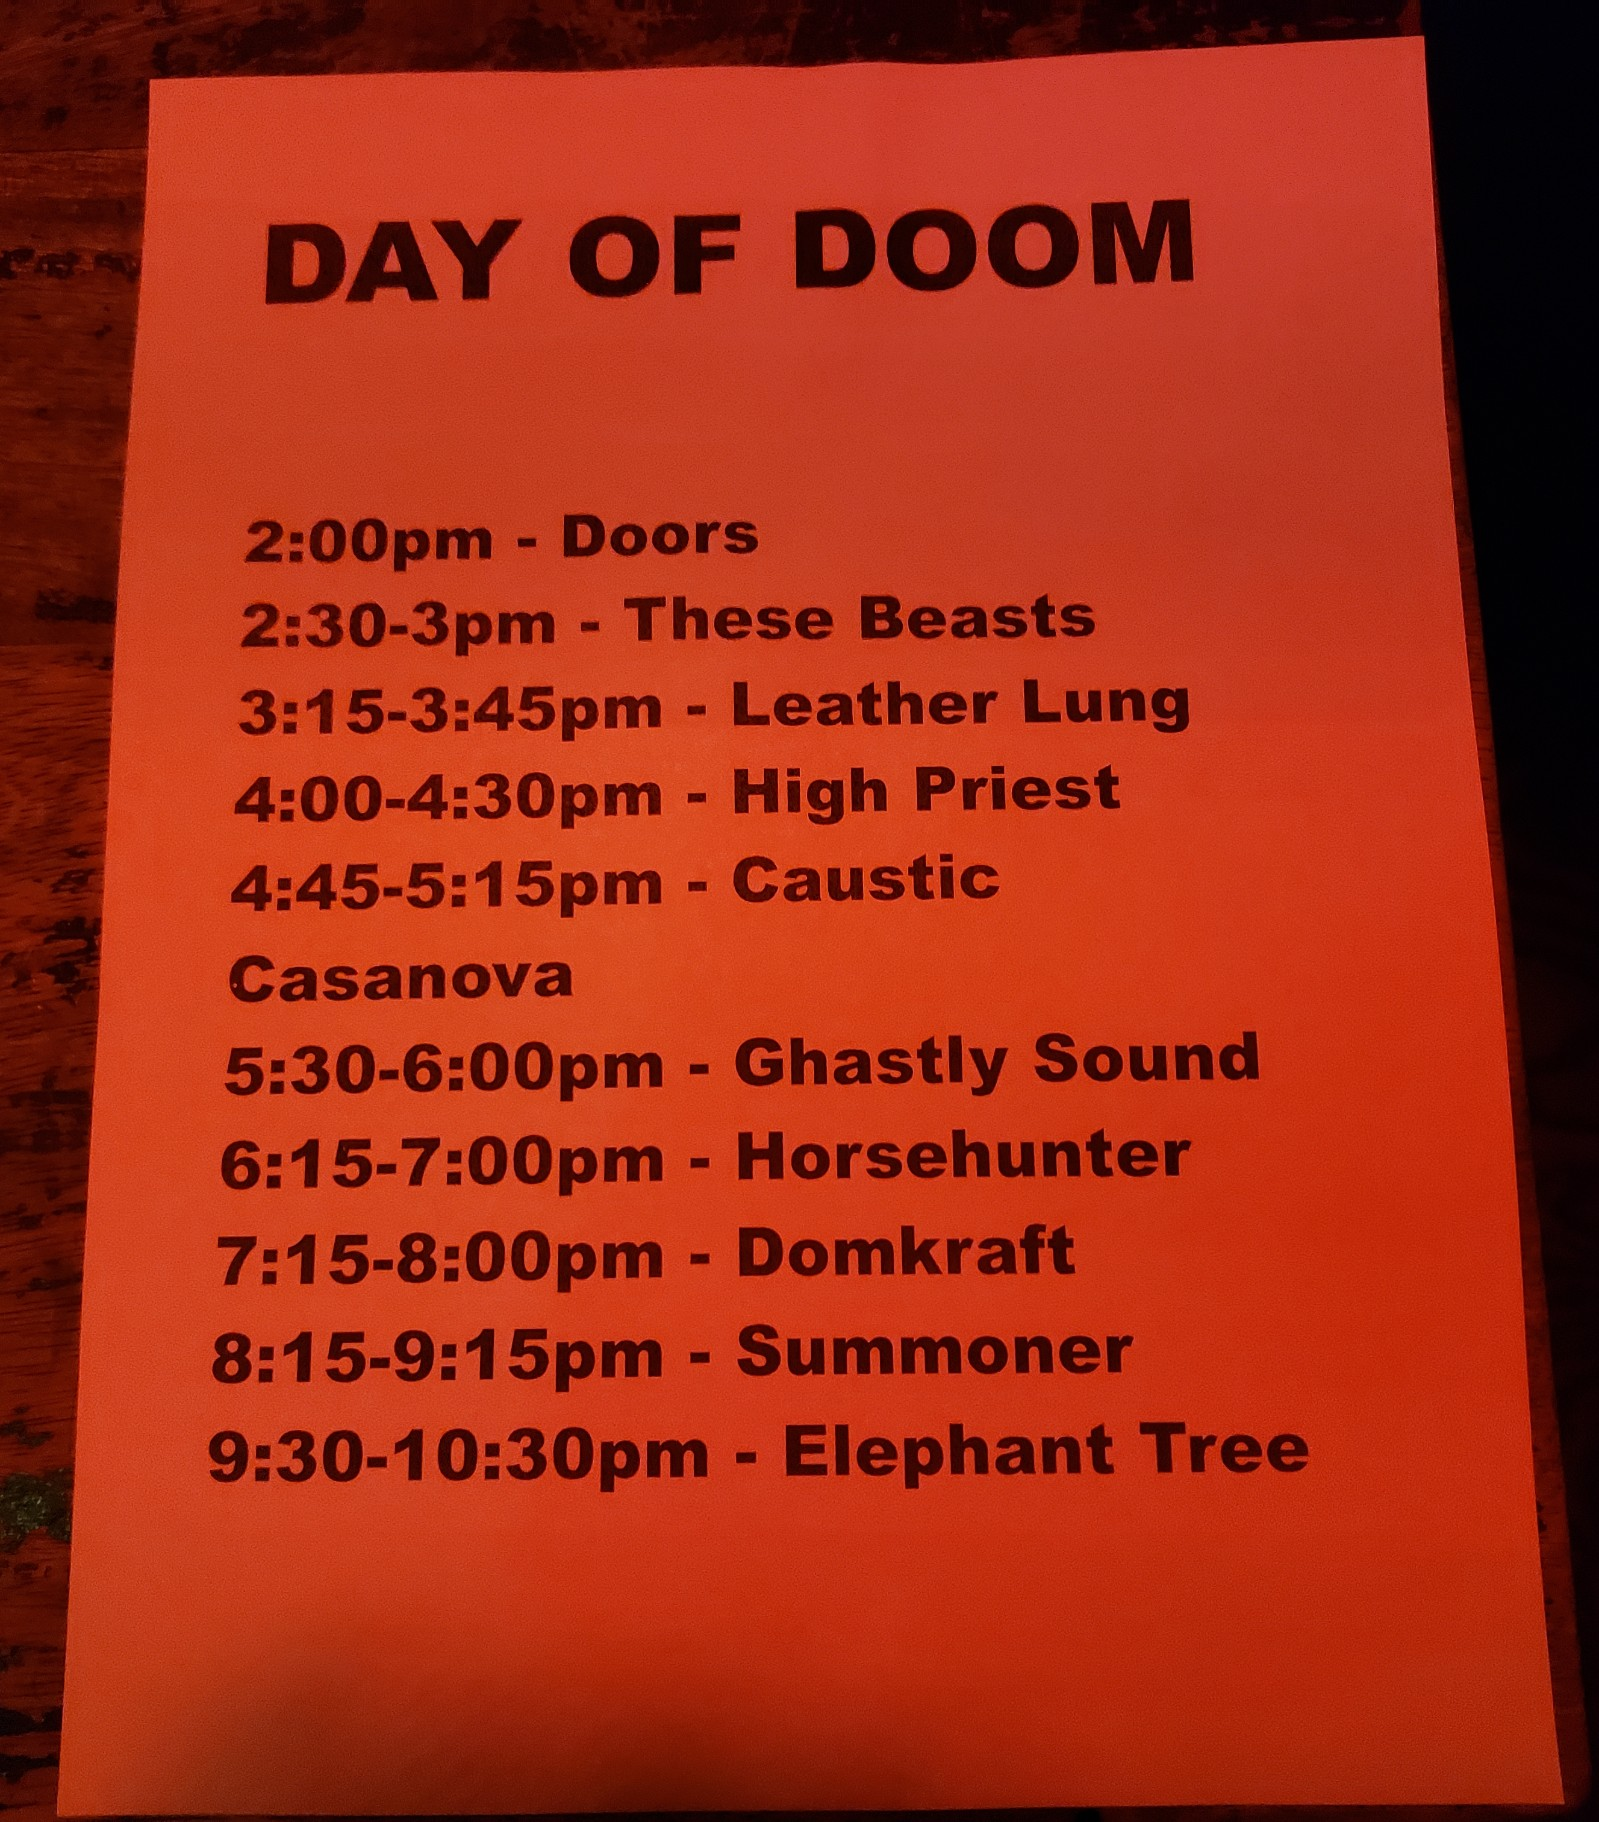 DAY OF DOOM SCHEDULE